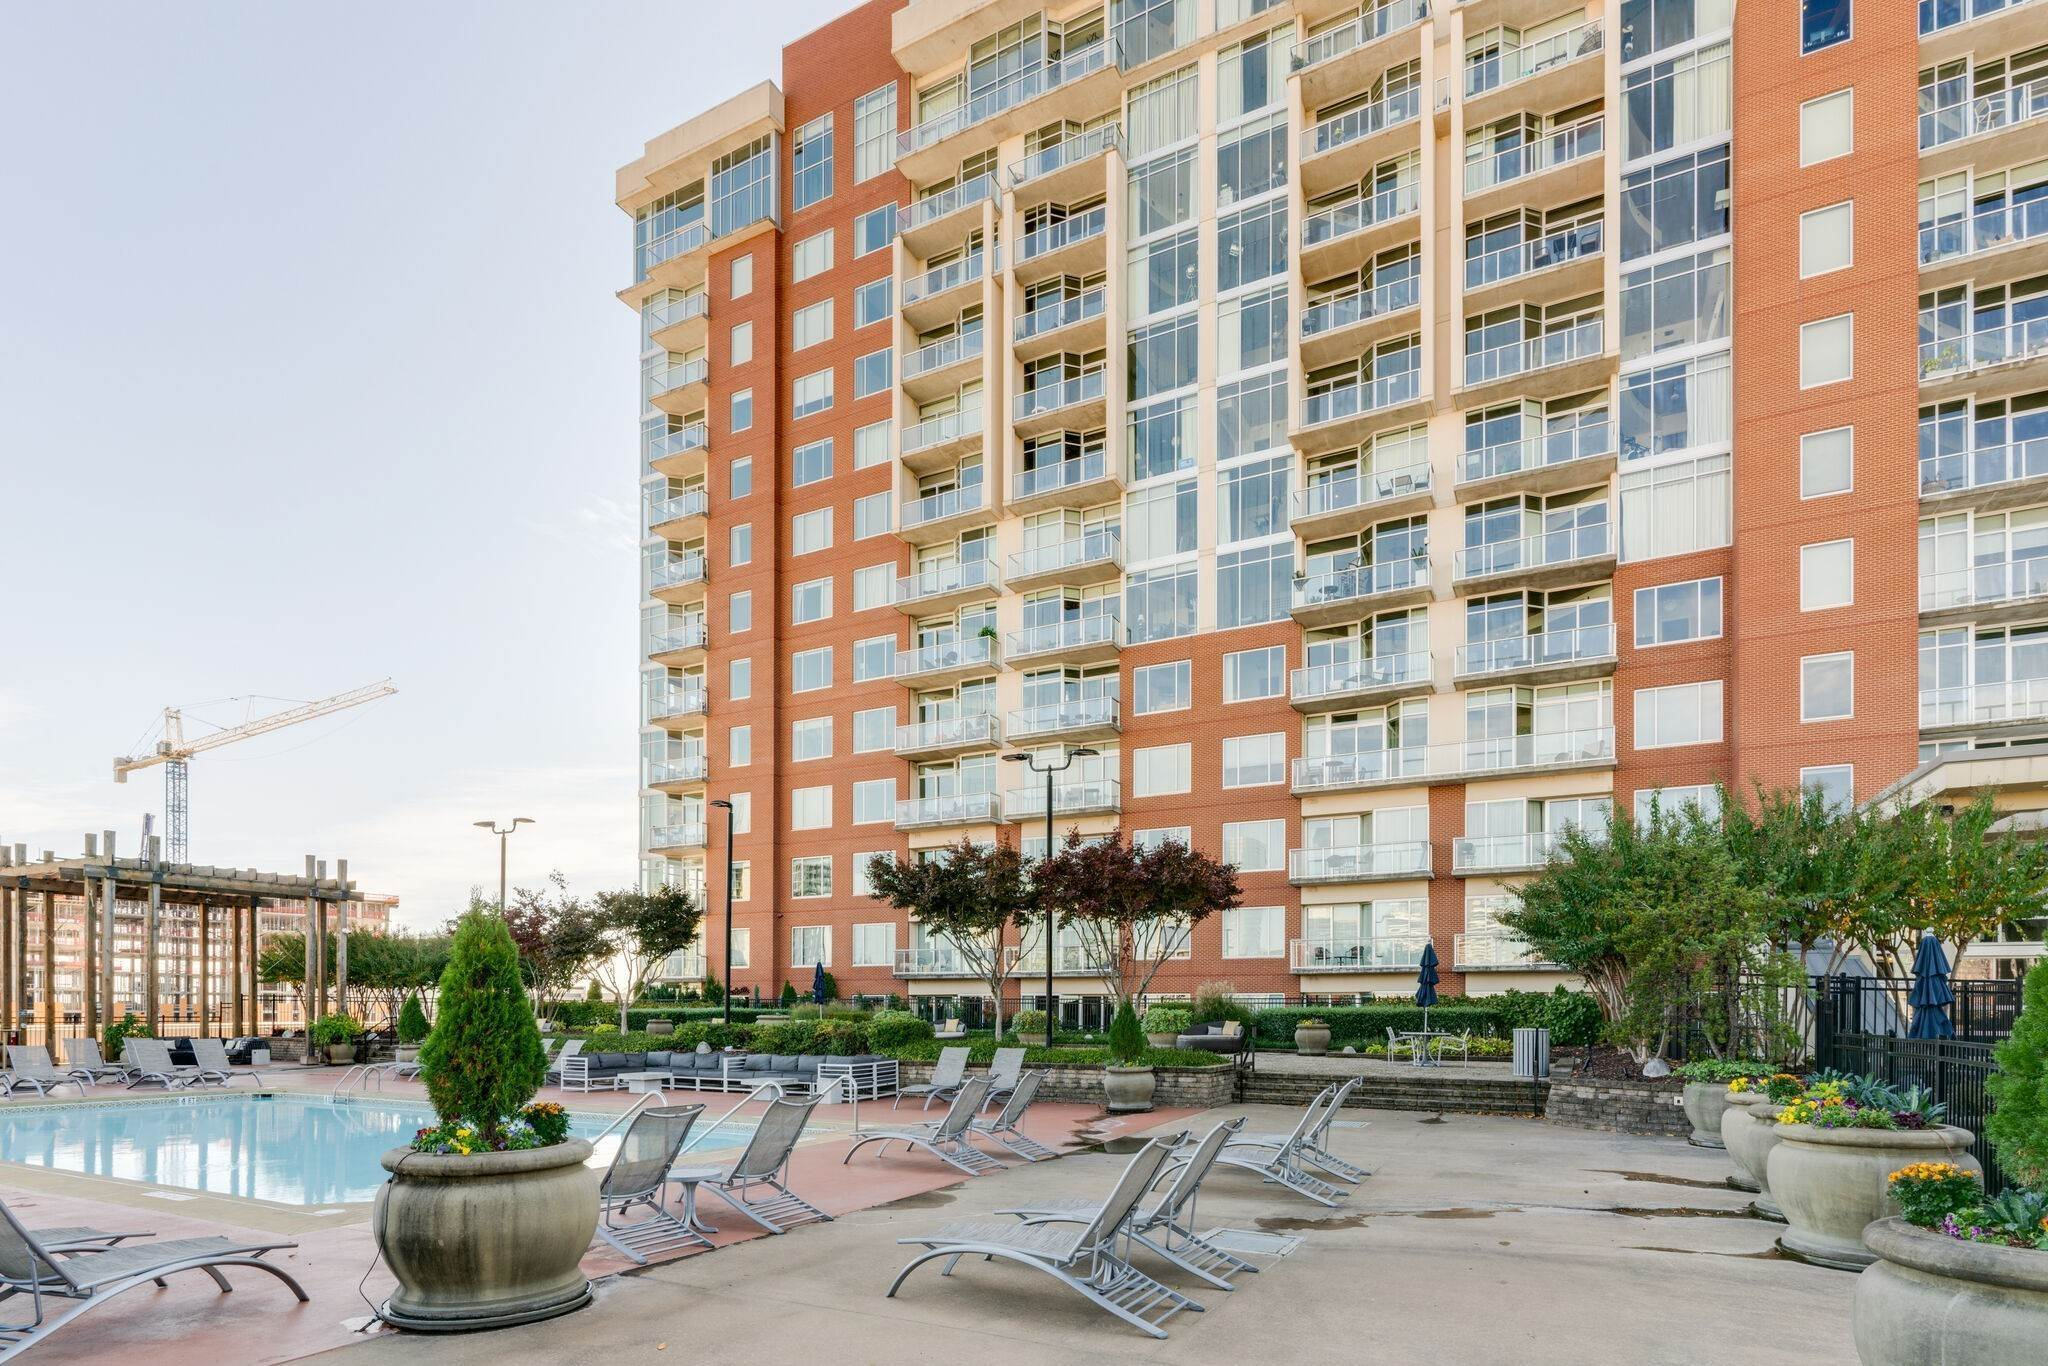 22. High Rise for Sale at 600 12th Ave, S Nashville, Tennessee 37203 United States